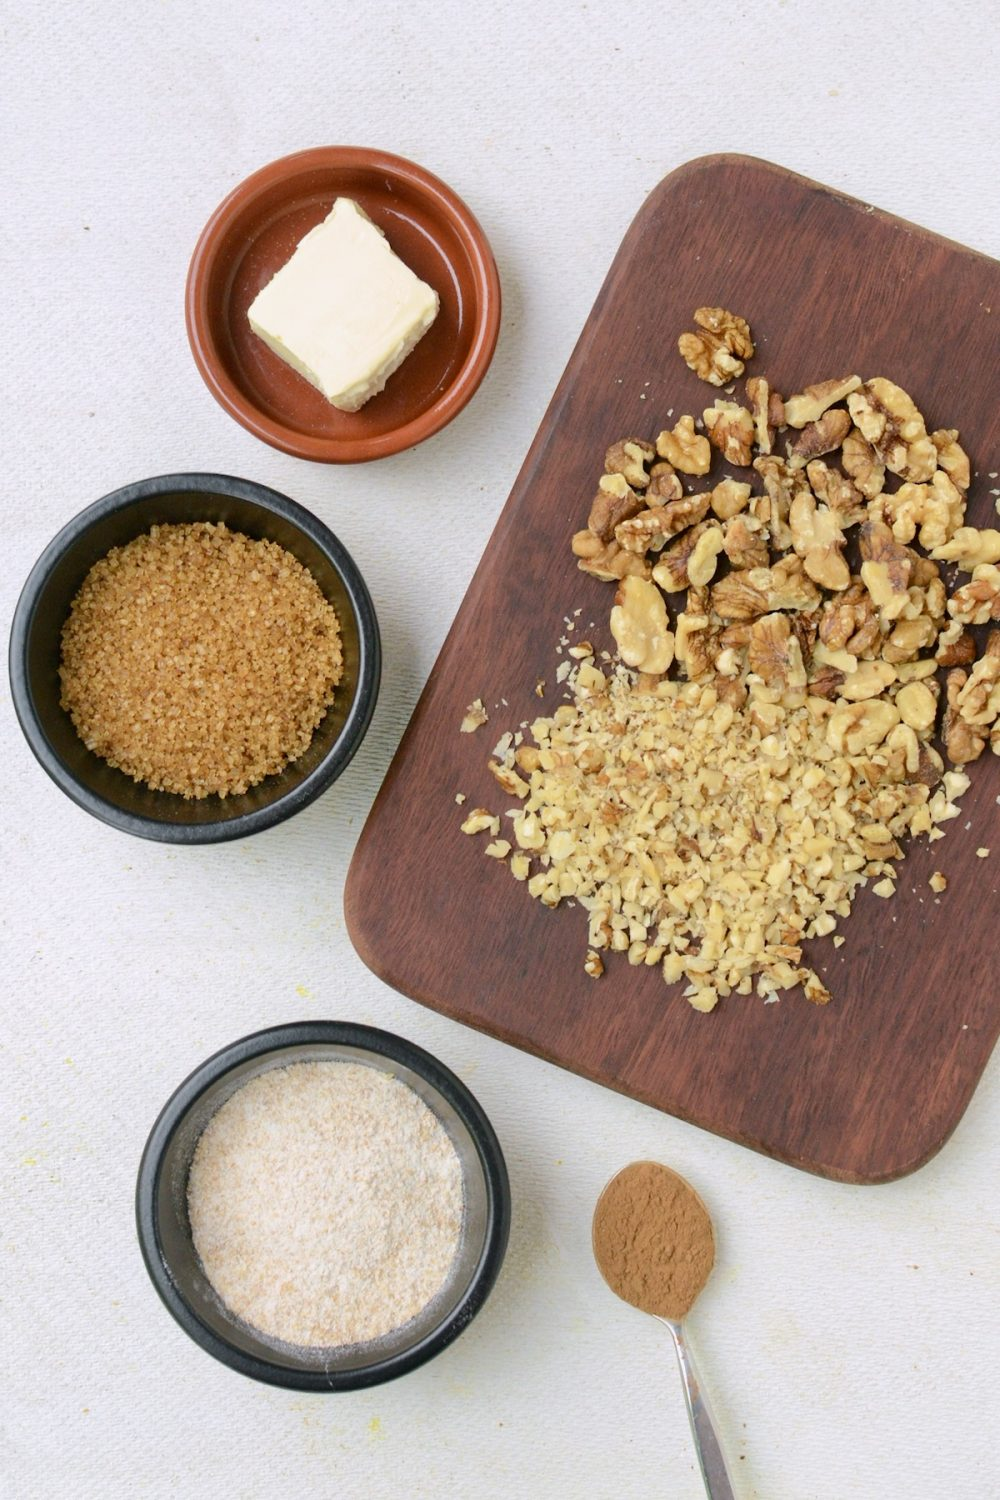 A wooden board with chooped walnuts, and small containers of vegan butter, demerara sugar, flour and cinnamon.